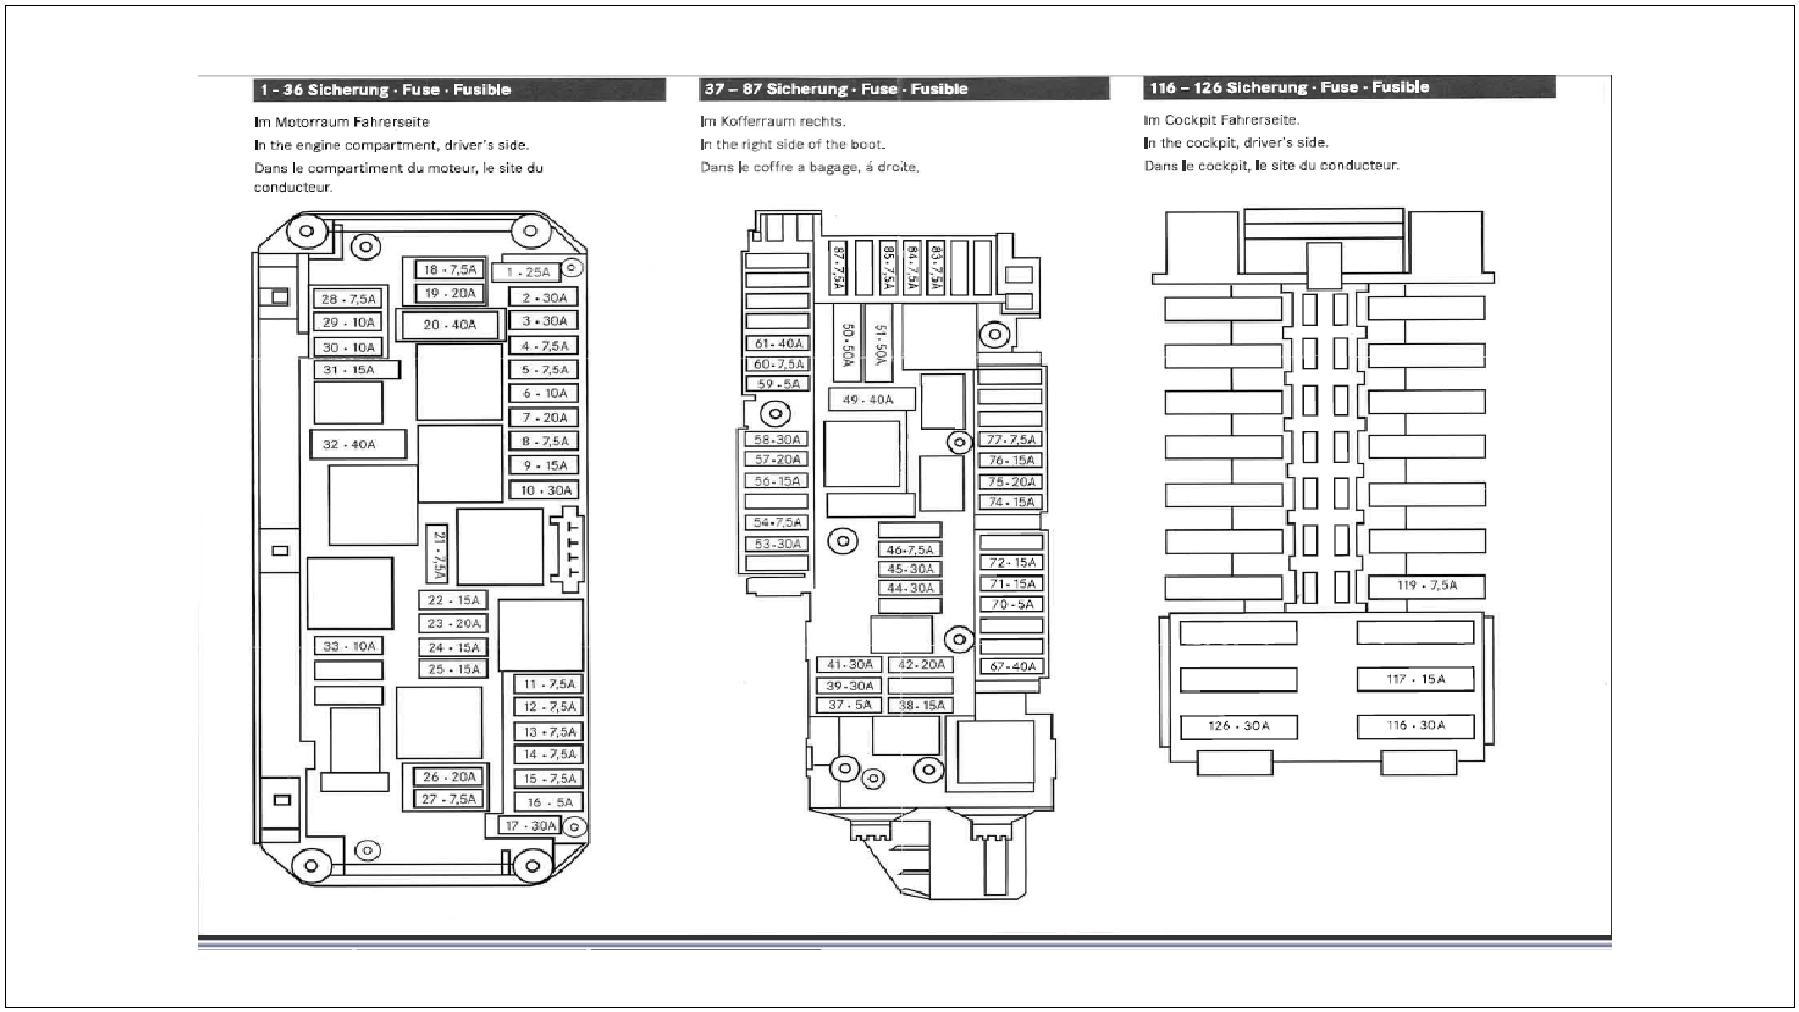 FuseAllocation2 65535 mercedes benz b200 fuse box on mercedes download wirning diagrams mercedes cla fuse box diagram at soozxer.org